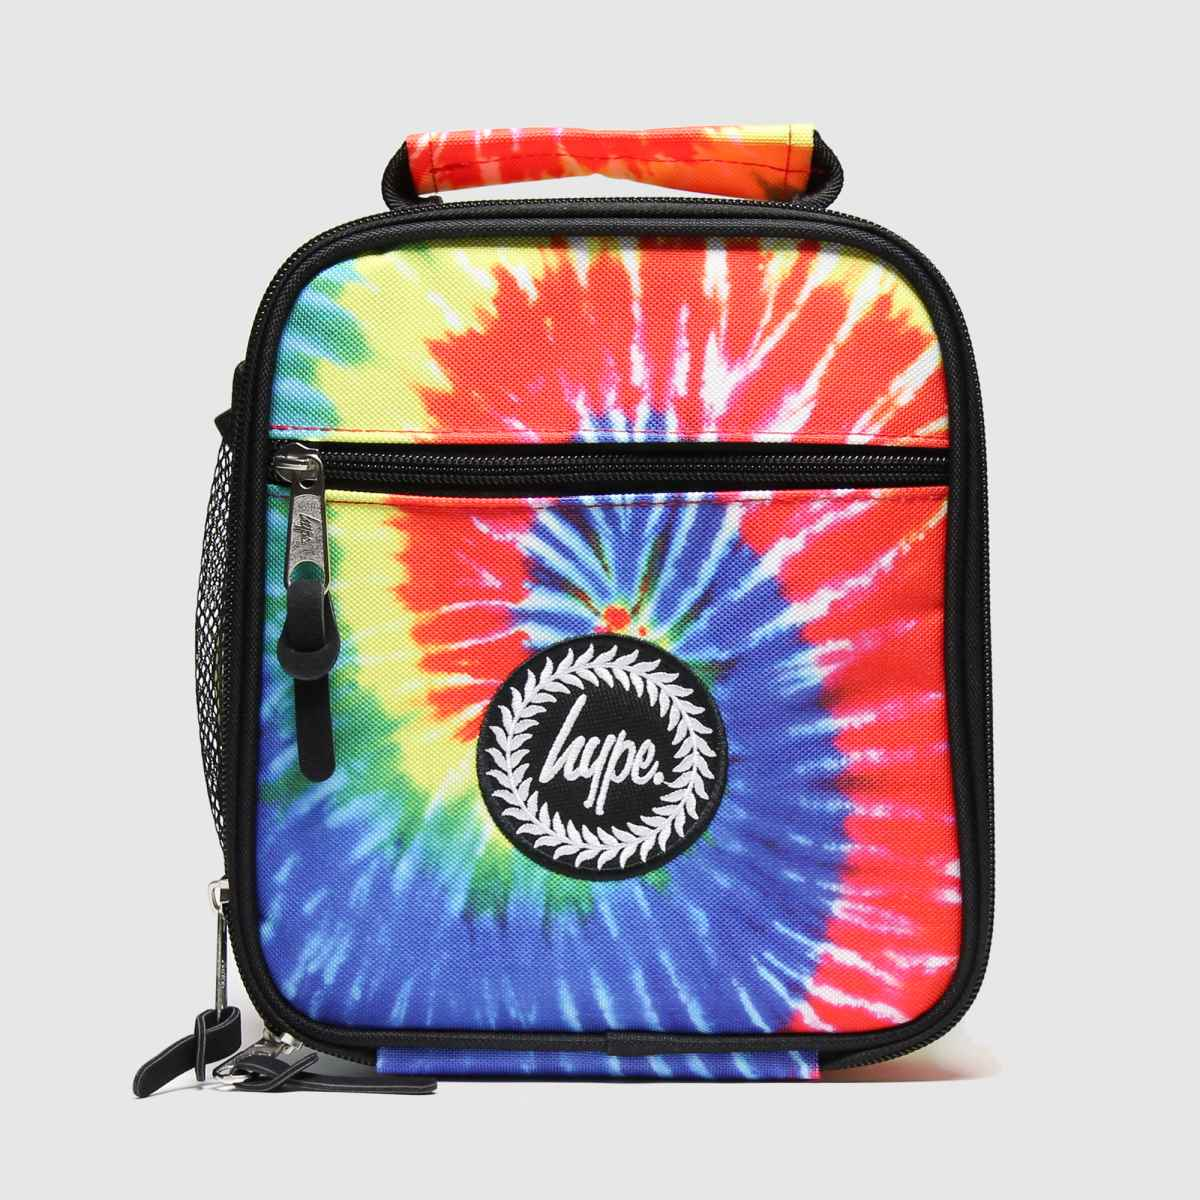 Accessories Hype Multi Lunch Bag